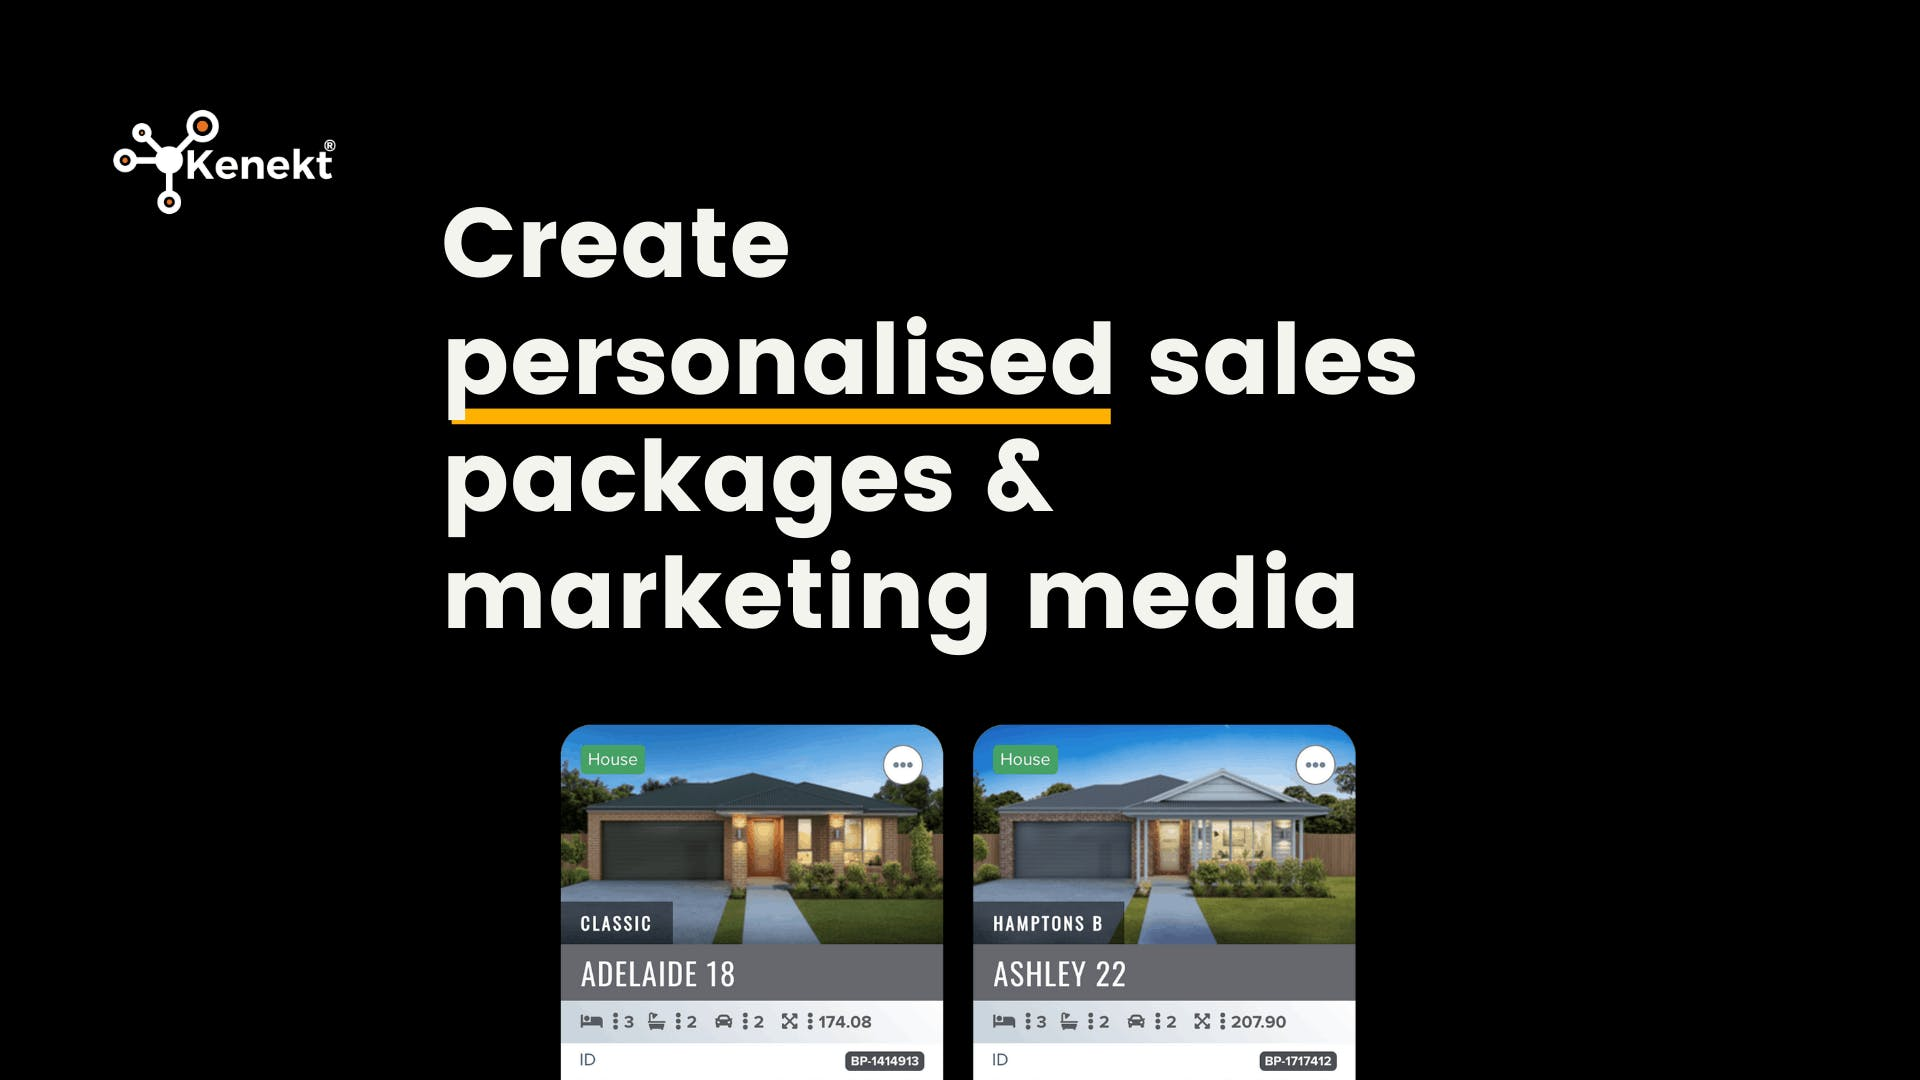 new land and house packages sydney with kenekt portals